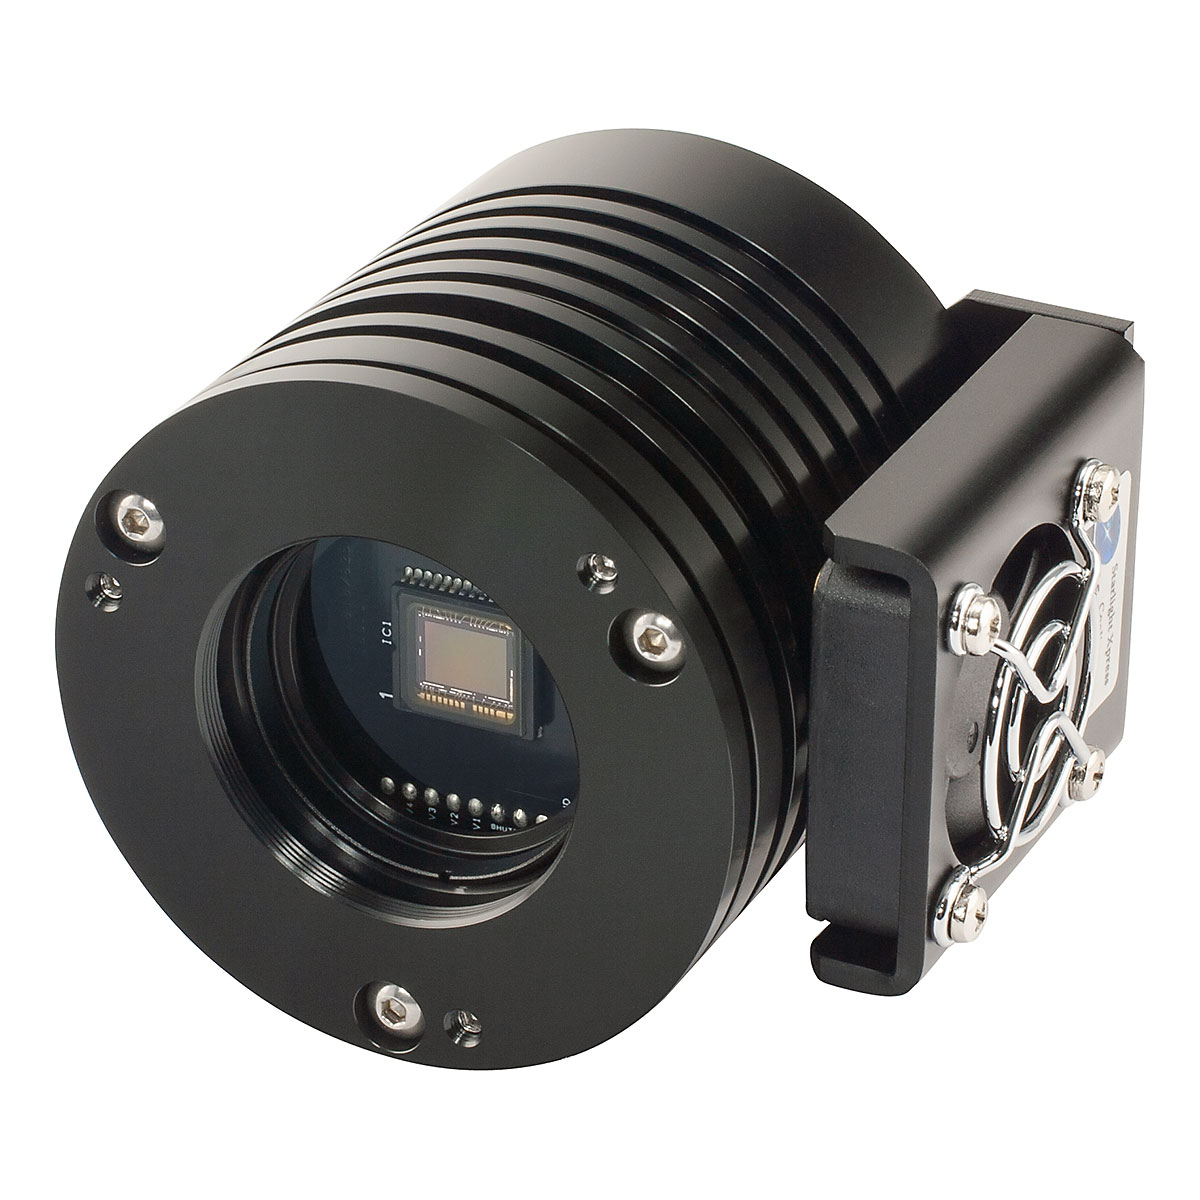 Starlight Xpress Trius PRO 825 Mono CCD Camera